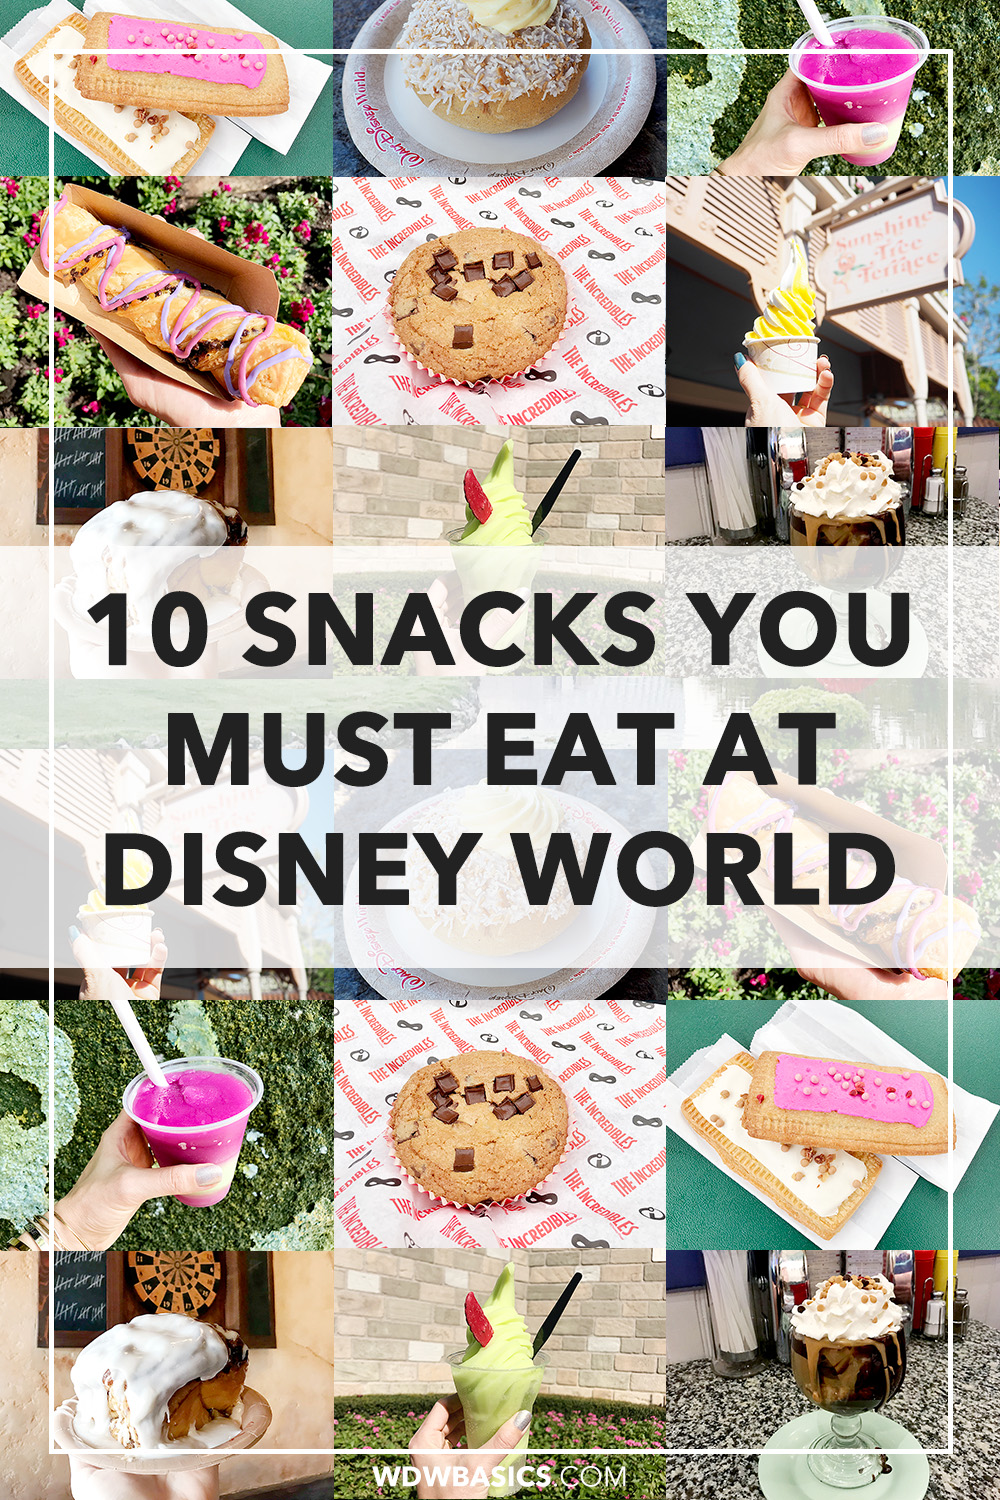 10 Snacks you must eat at Disney World